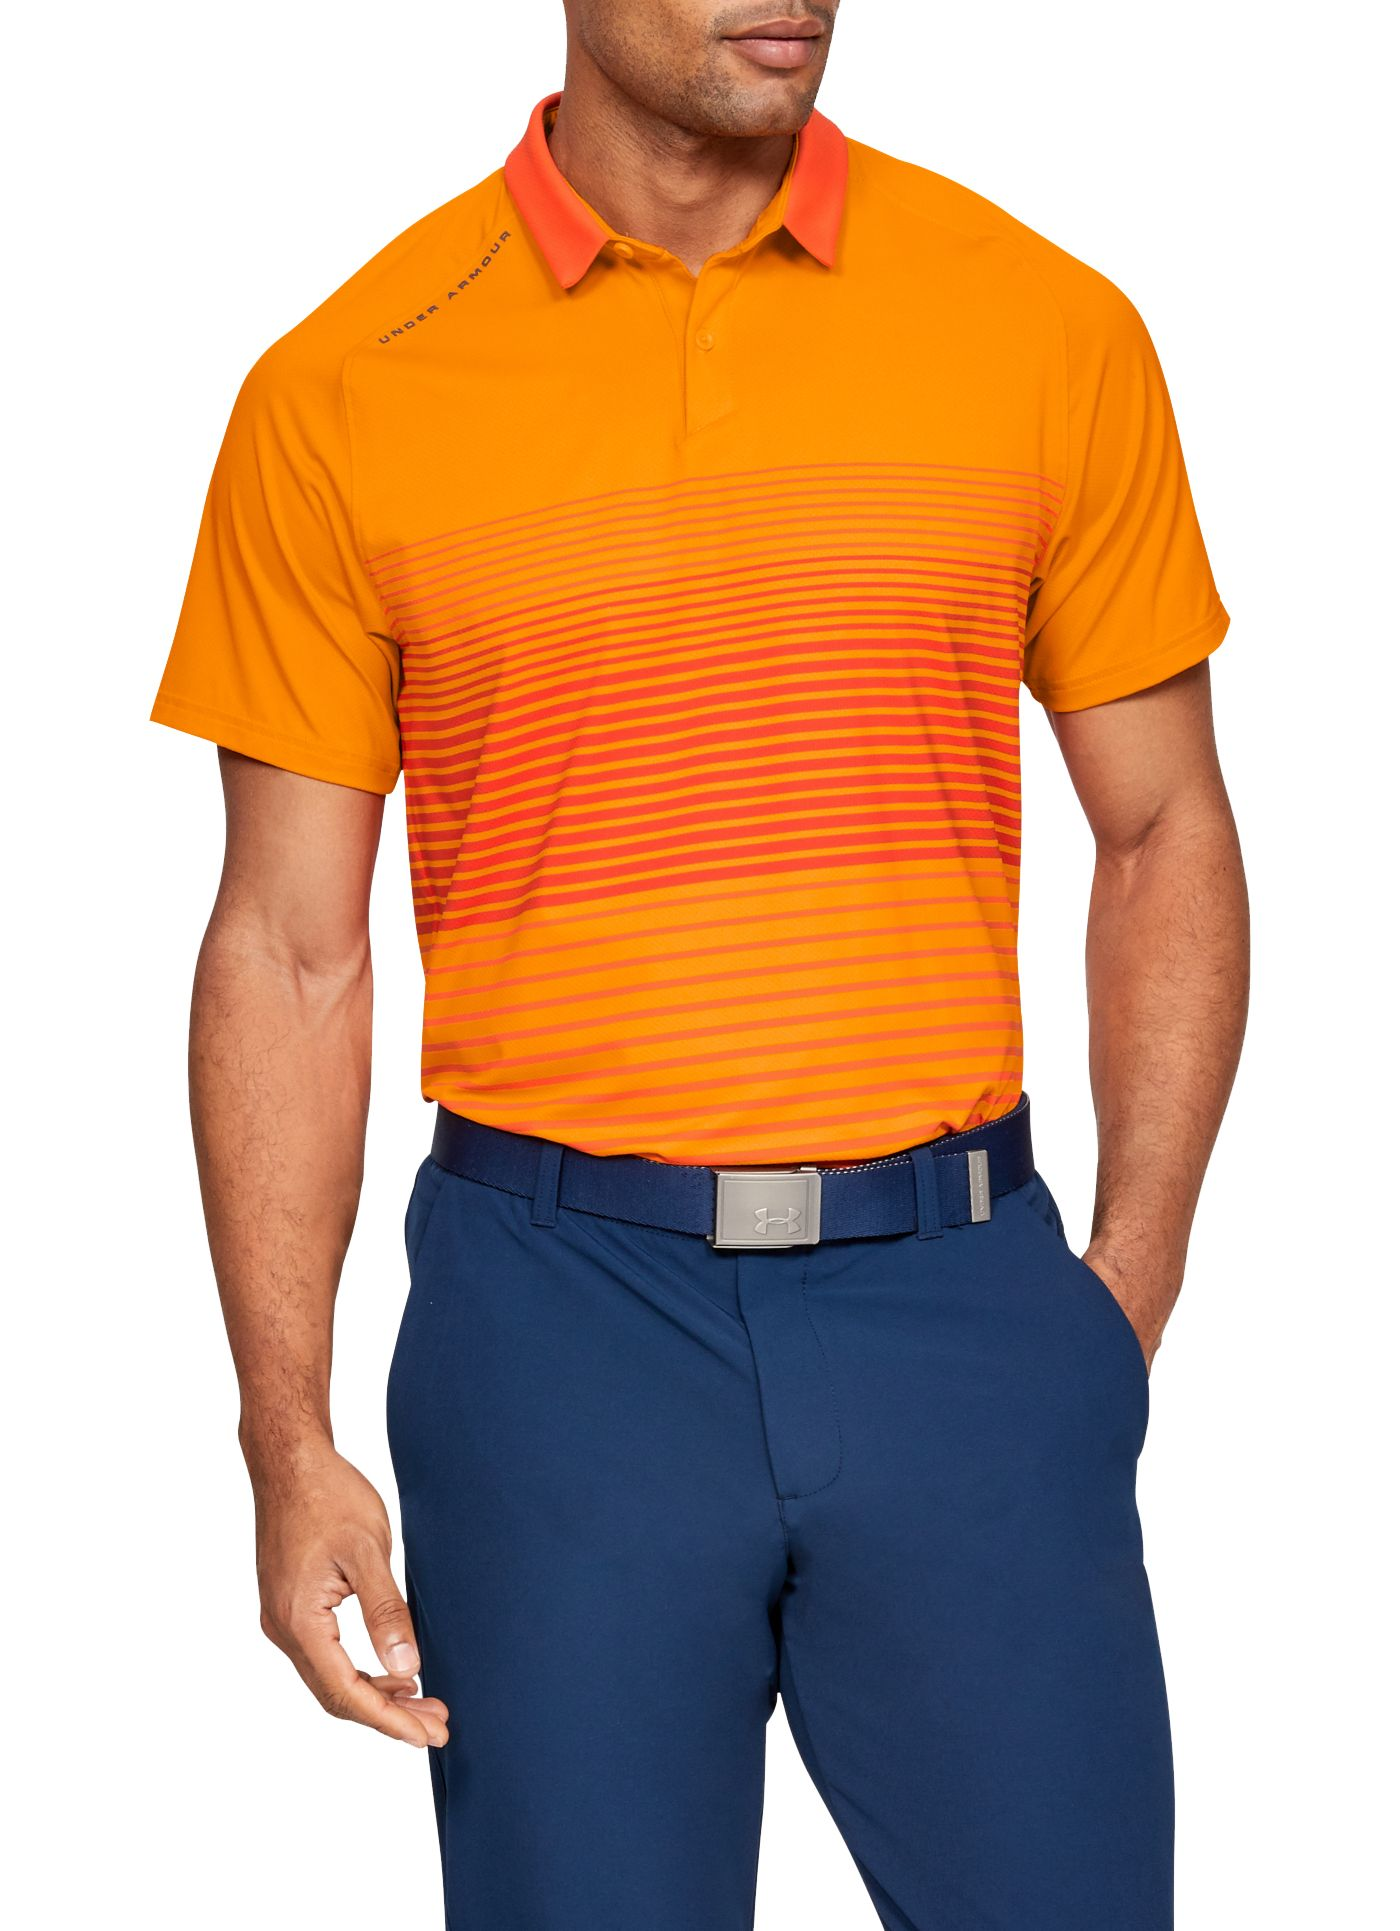 Under Armour Men's Iso-Chill Power Play Golf Polo